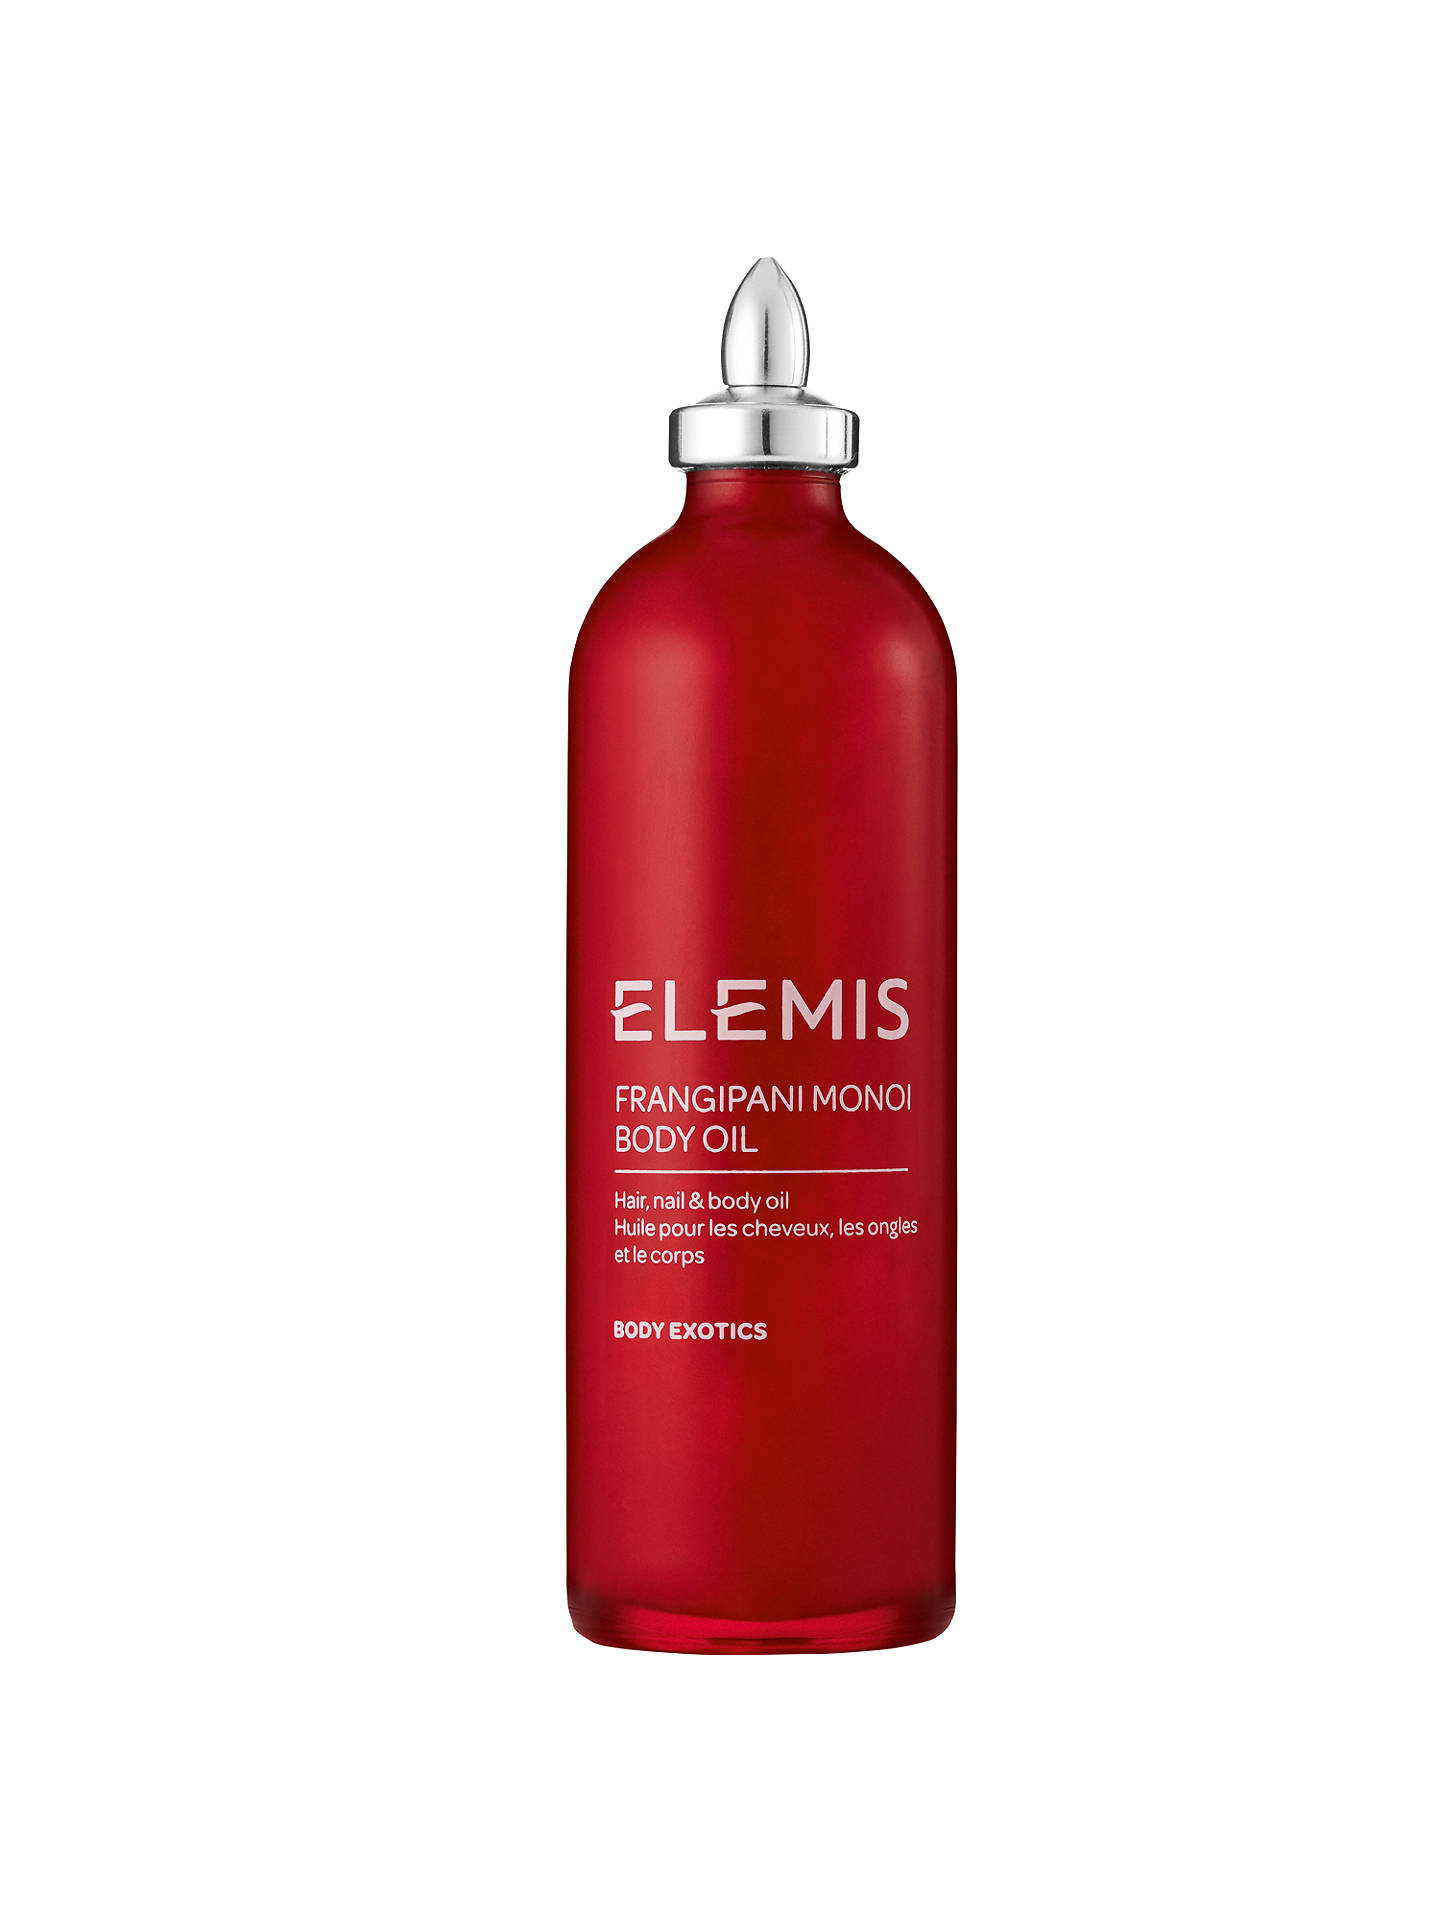 Buy Elemis Frangipani Monoi Body Oil, 100ml Online at johnlewis.com